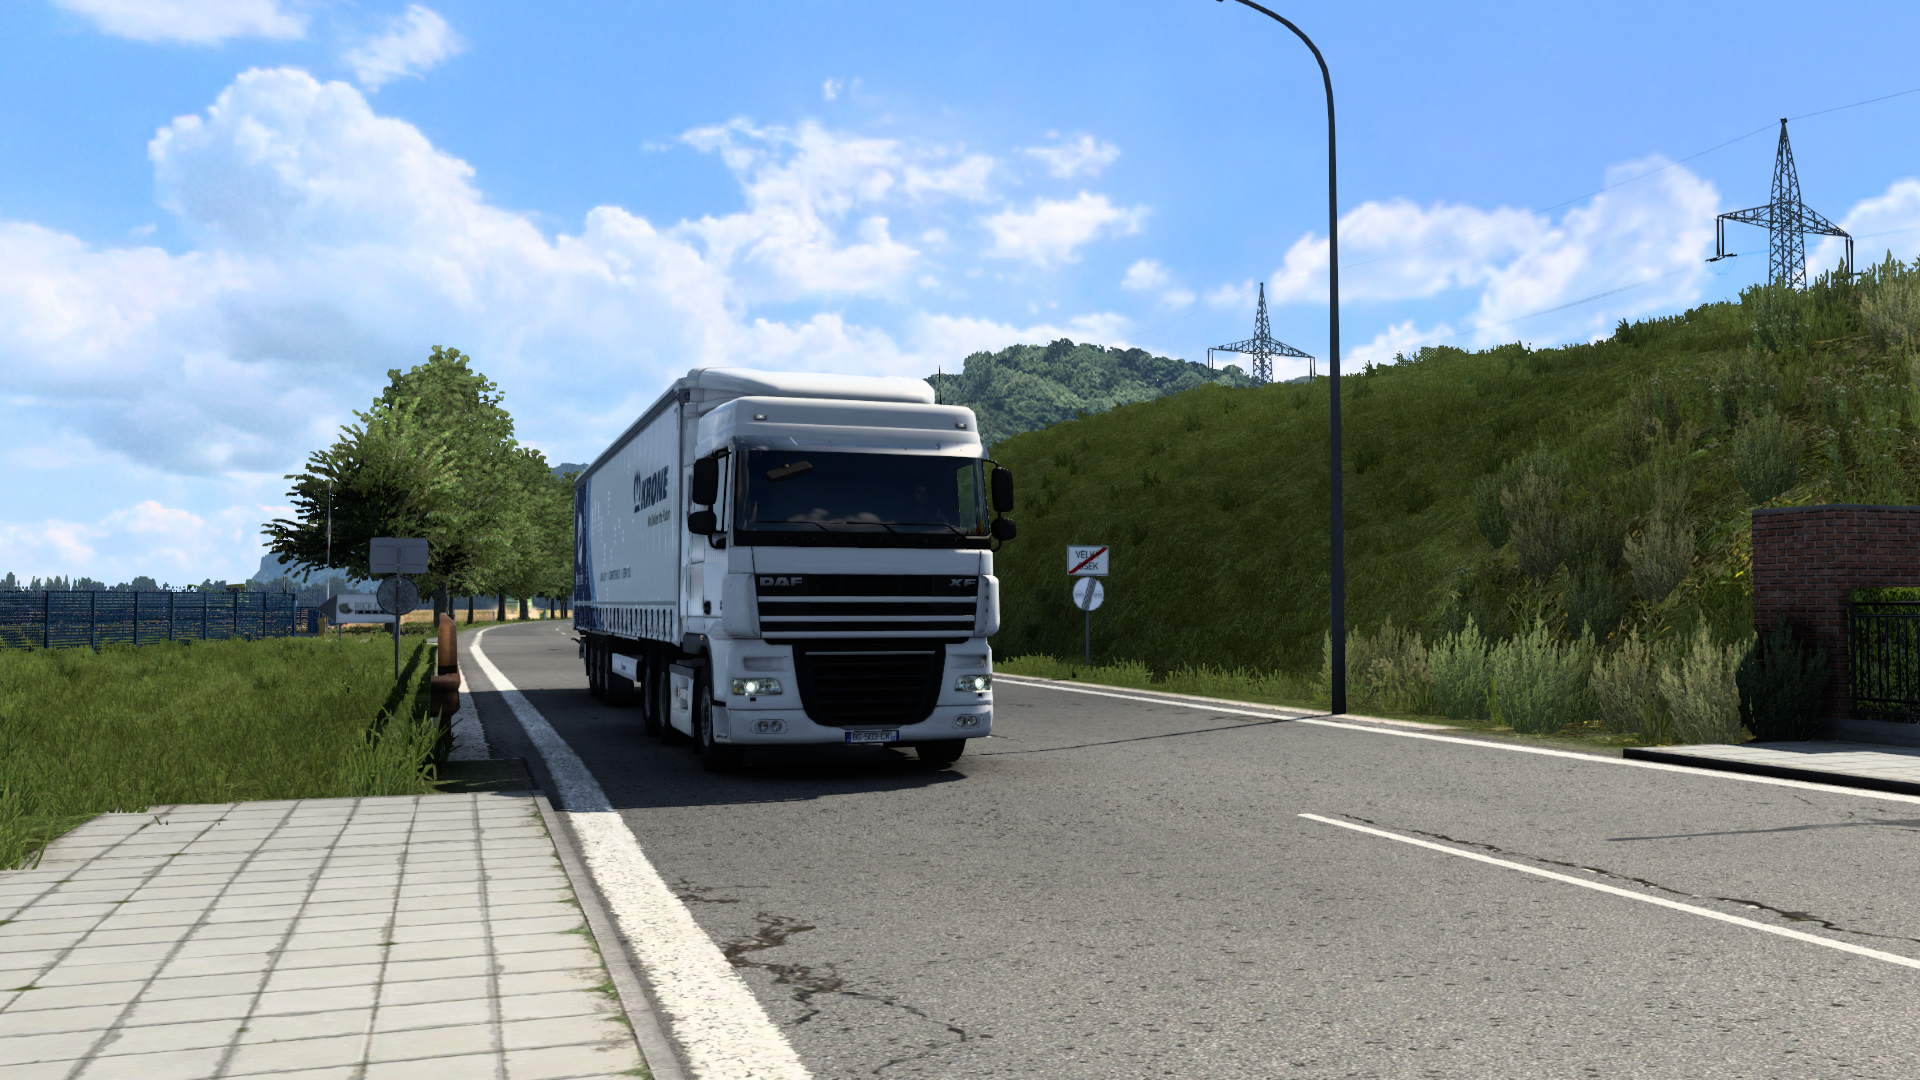 ets2_20211018_213517_00.png